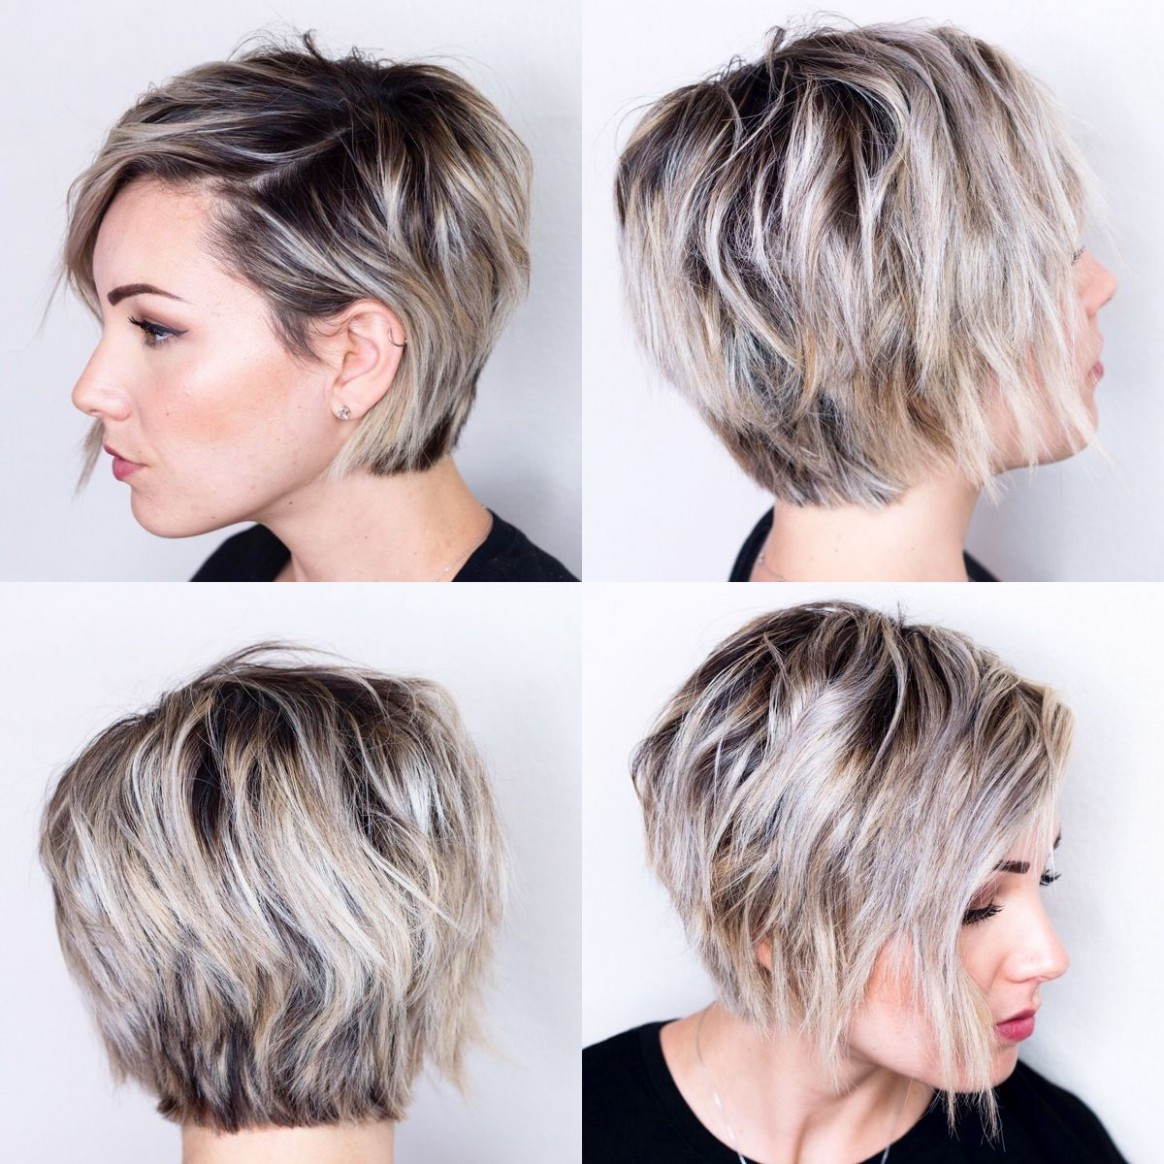 Pin By Hanna Hörning On Frisuren In 10 Oval Face Haircuts Short Haircuts For Oval Faces And Thin Hair